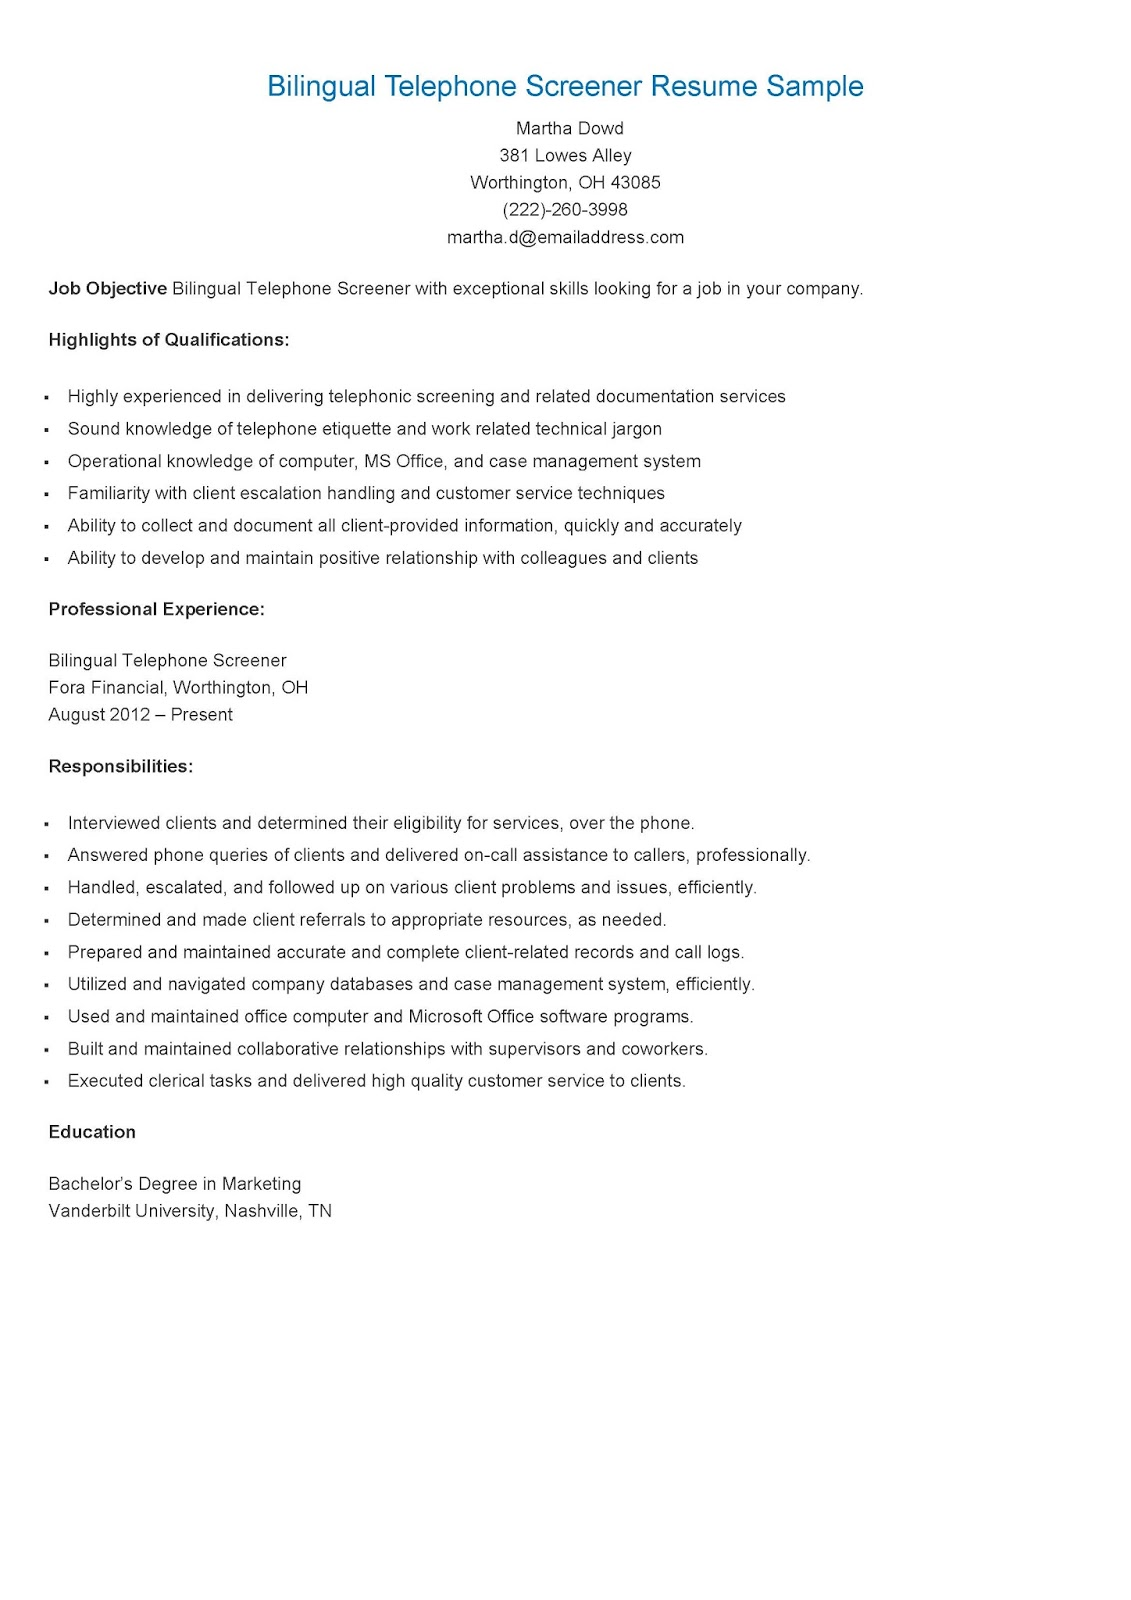 bilingual resume examples bilingual consultant resume sample resume samples bilingual telephone screener resume sample